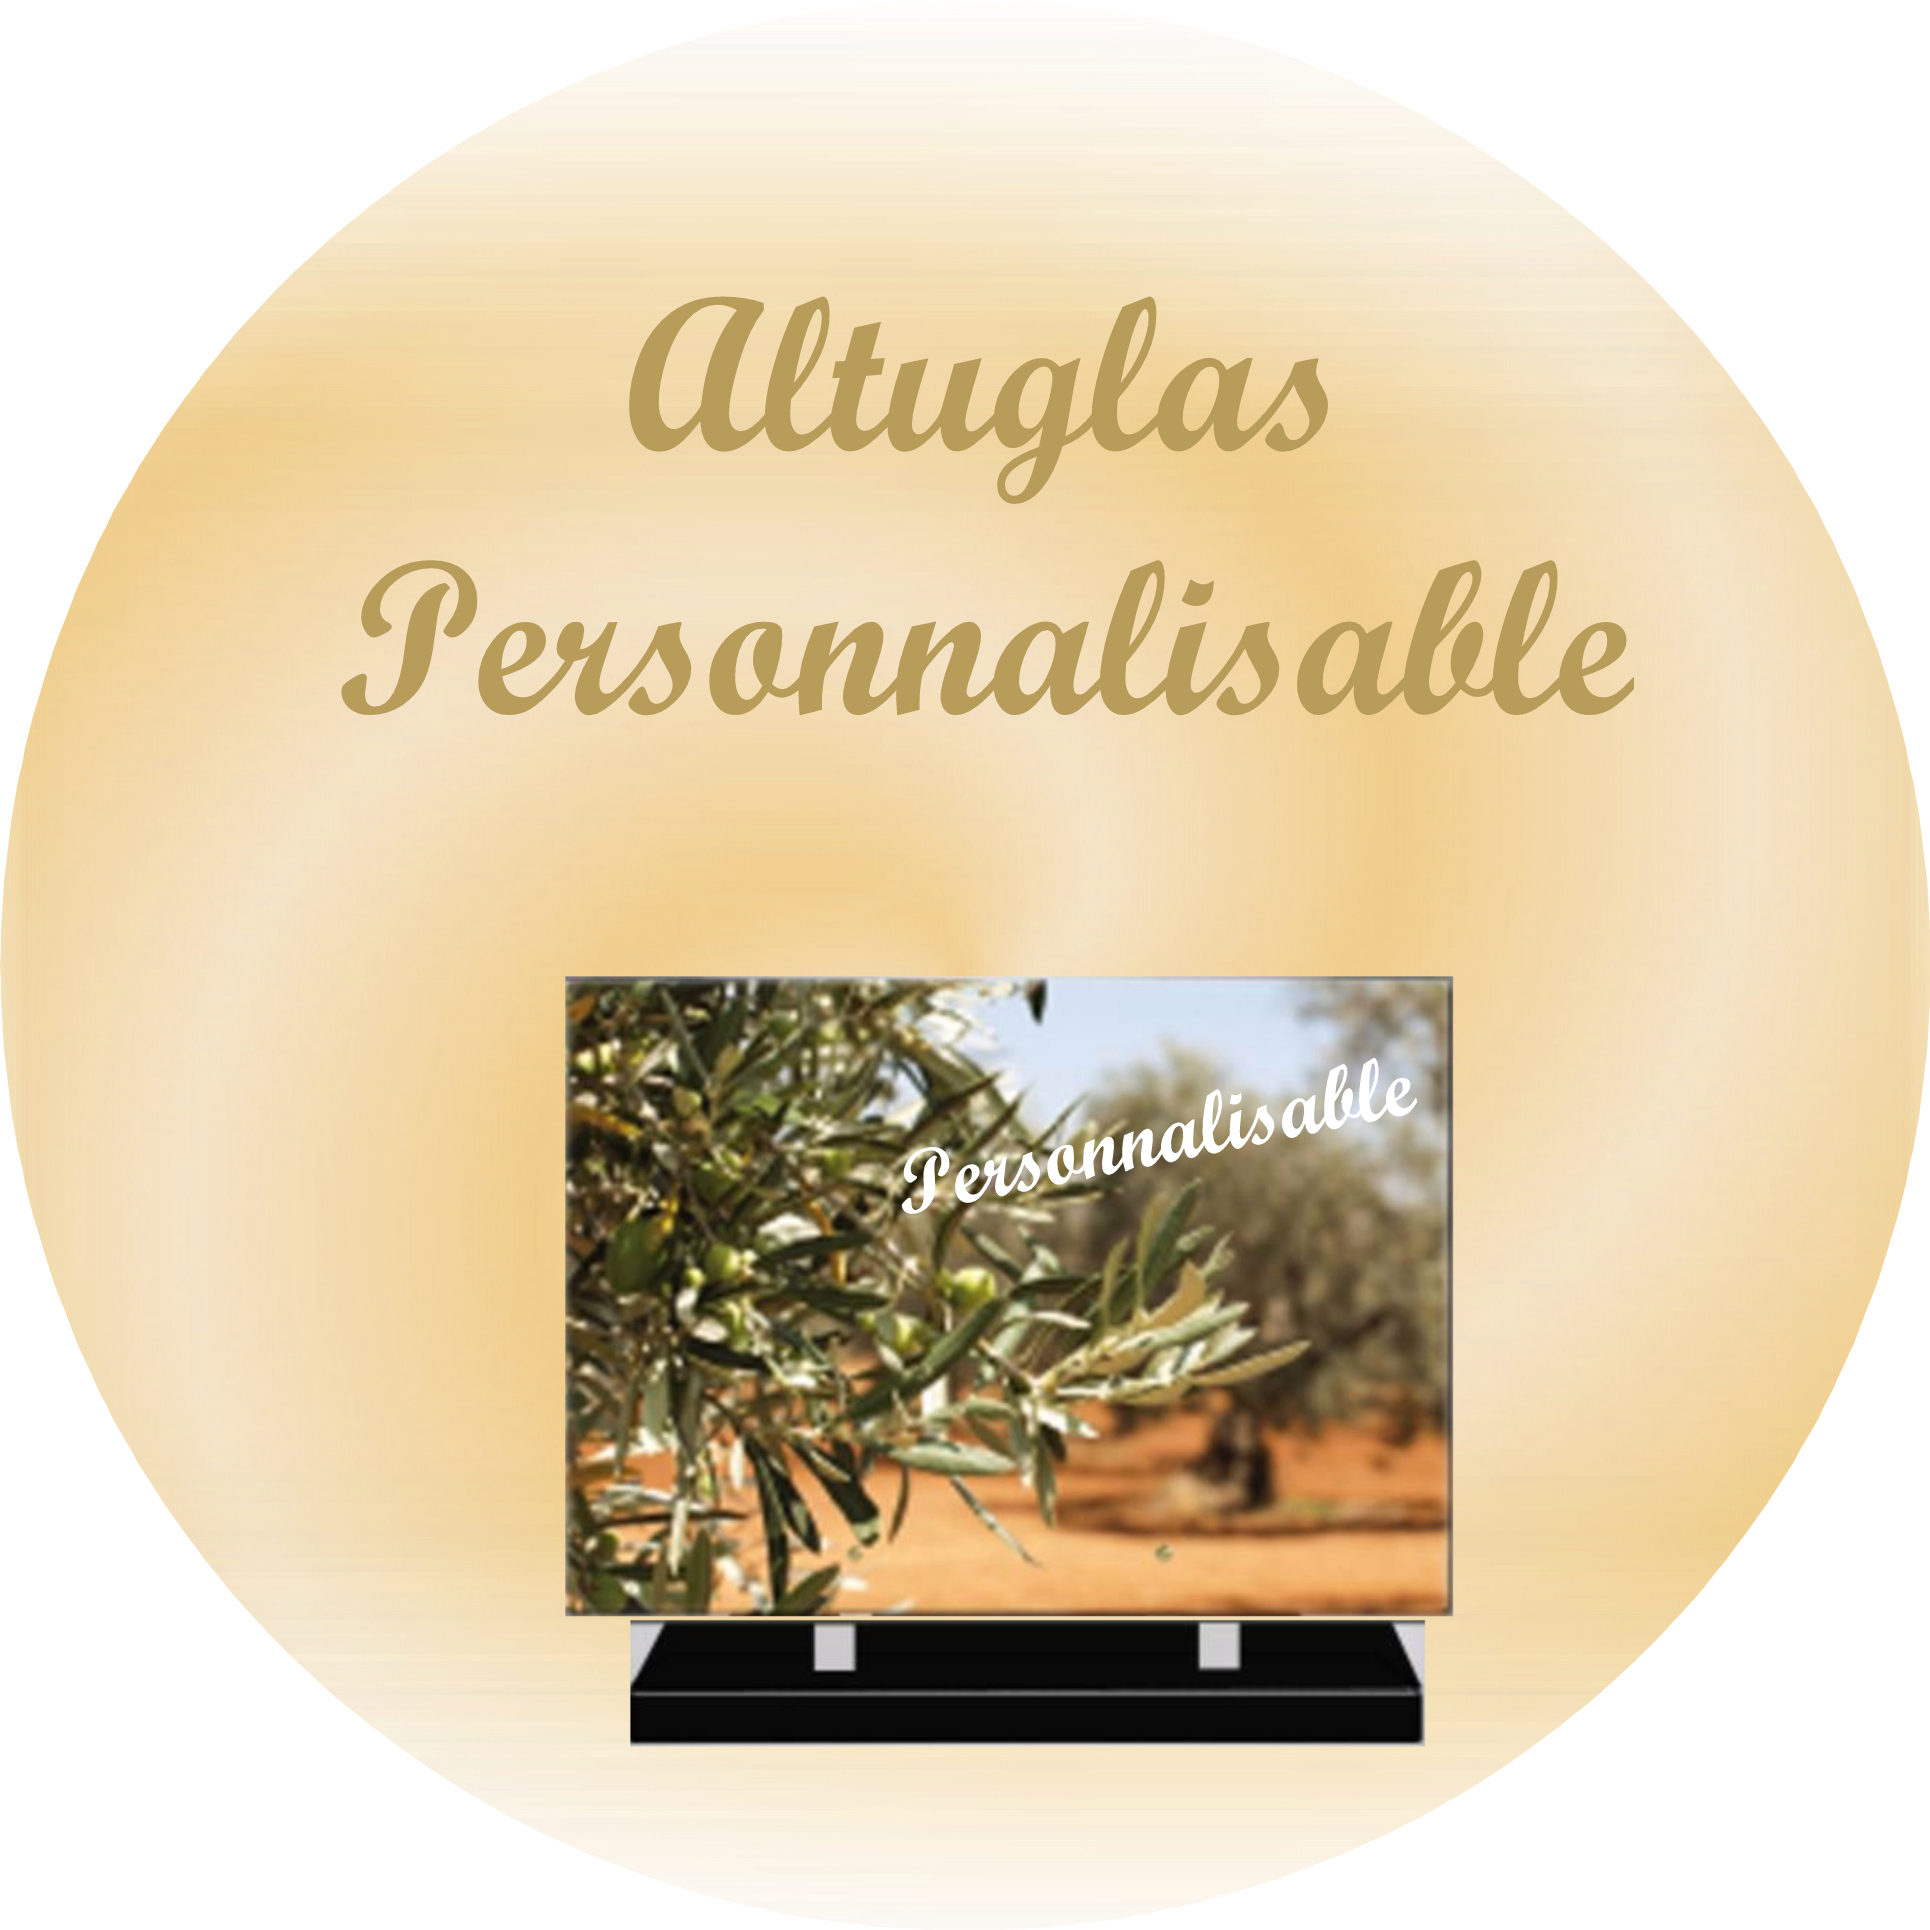 PLAQUES FUNERAIRES MODERNES PERSONNALISABLES RECTANGLE BAZINGHEN